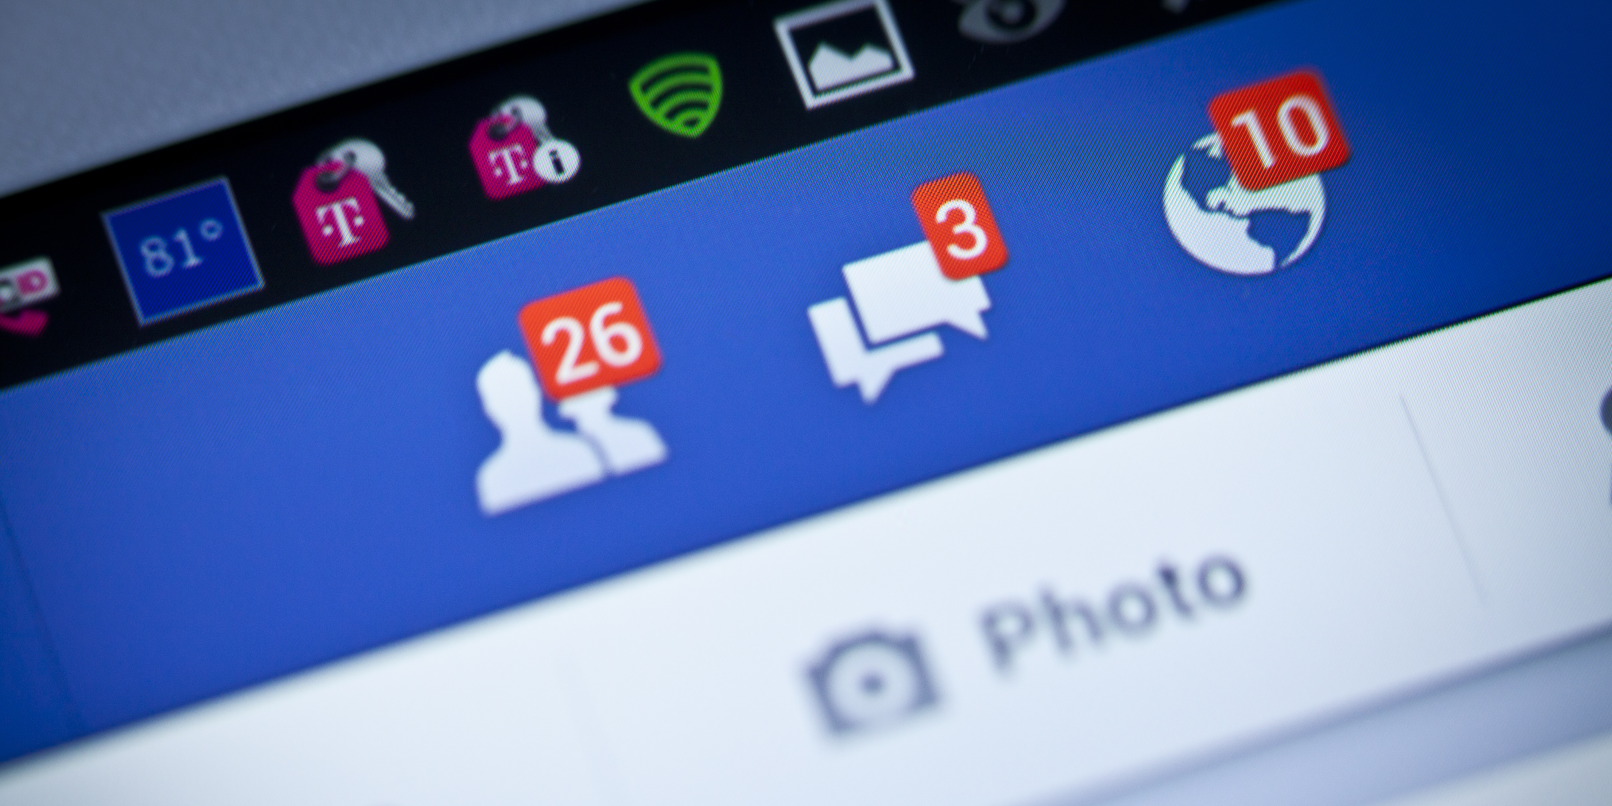 Facebook Is Sending A Scary Hacker Notification To Targeted Users